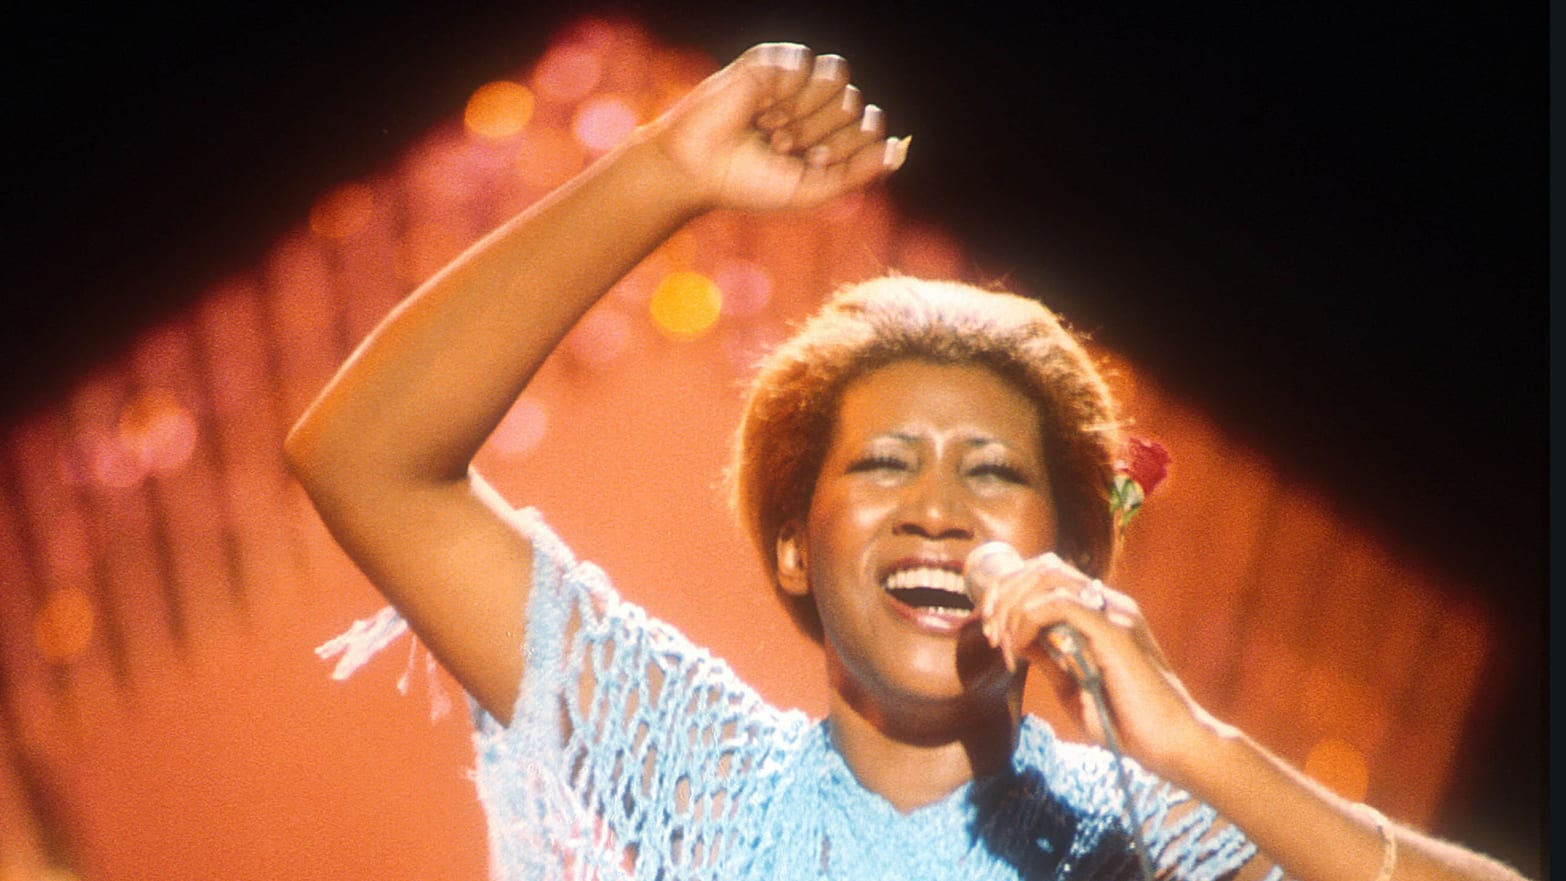 Aretha Franklin Fought 46 Years to Keep This Film From Release. We've Finally Seen It.